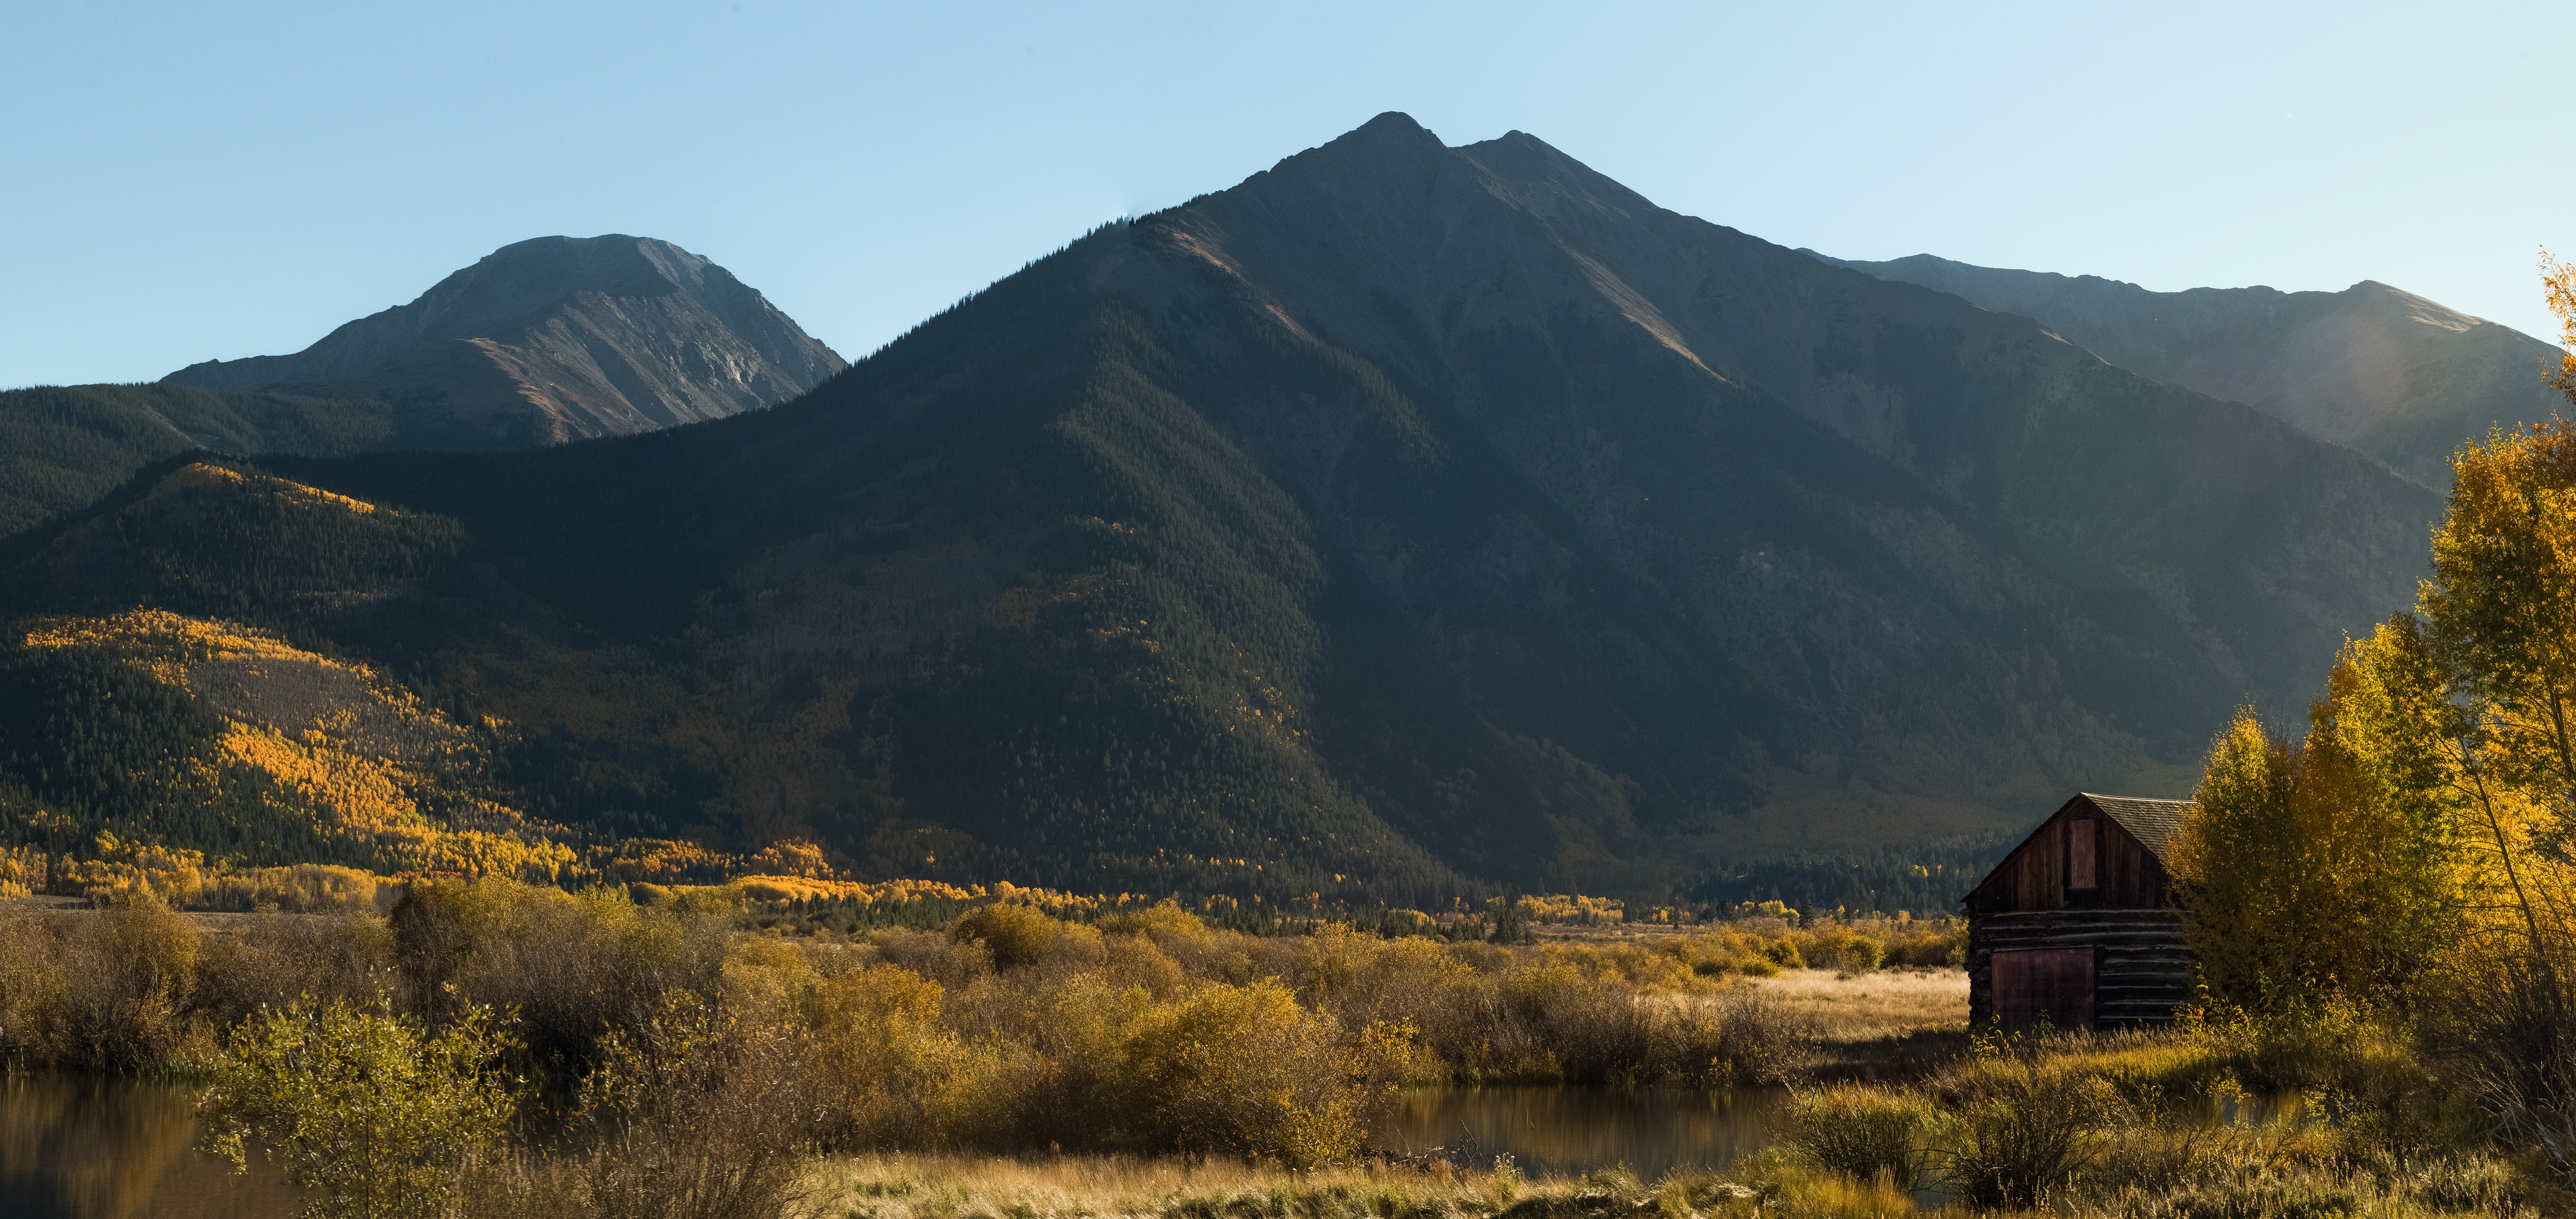 A mountain with glowing orange and brown trees at the foot beside a cabin.